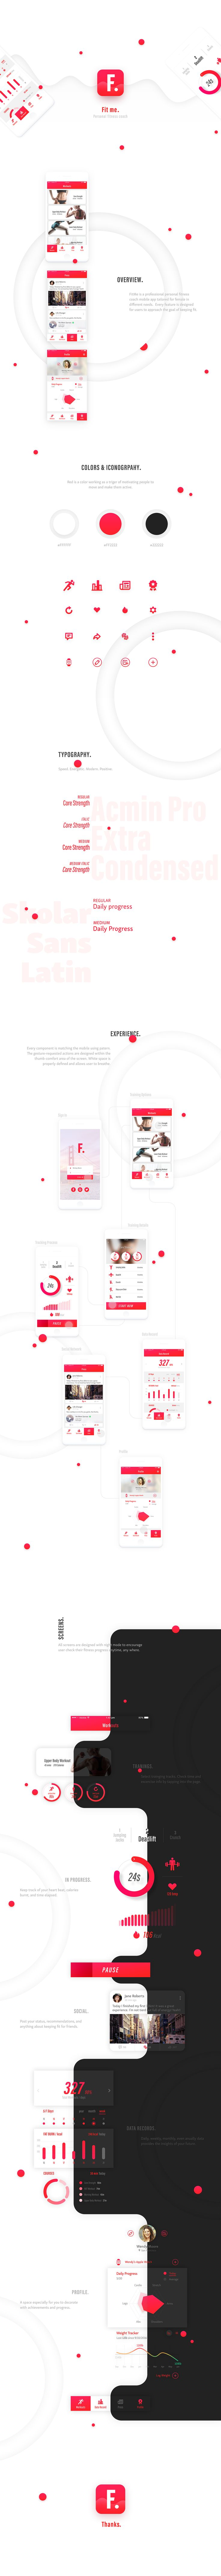 Fit Me mobile app on Behance